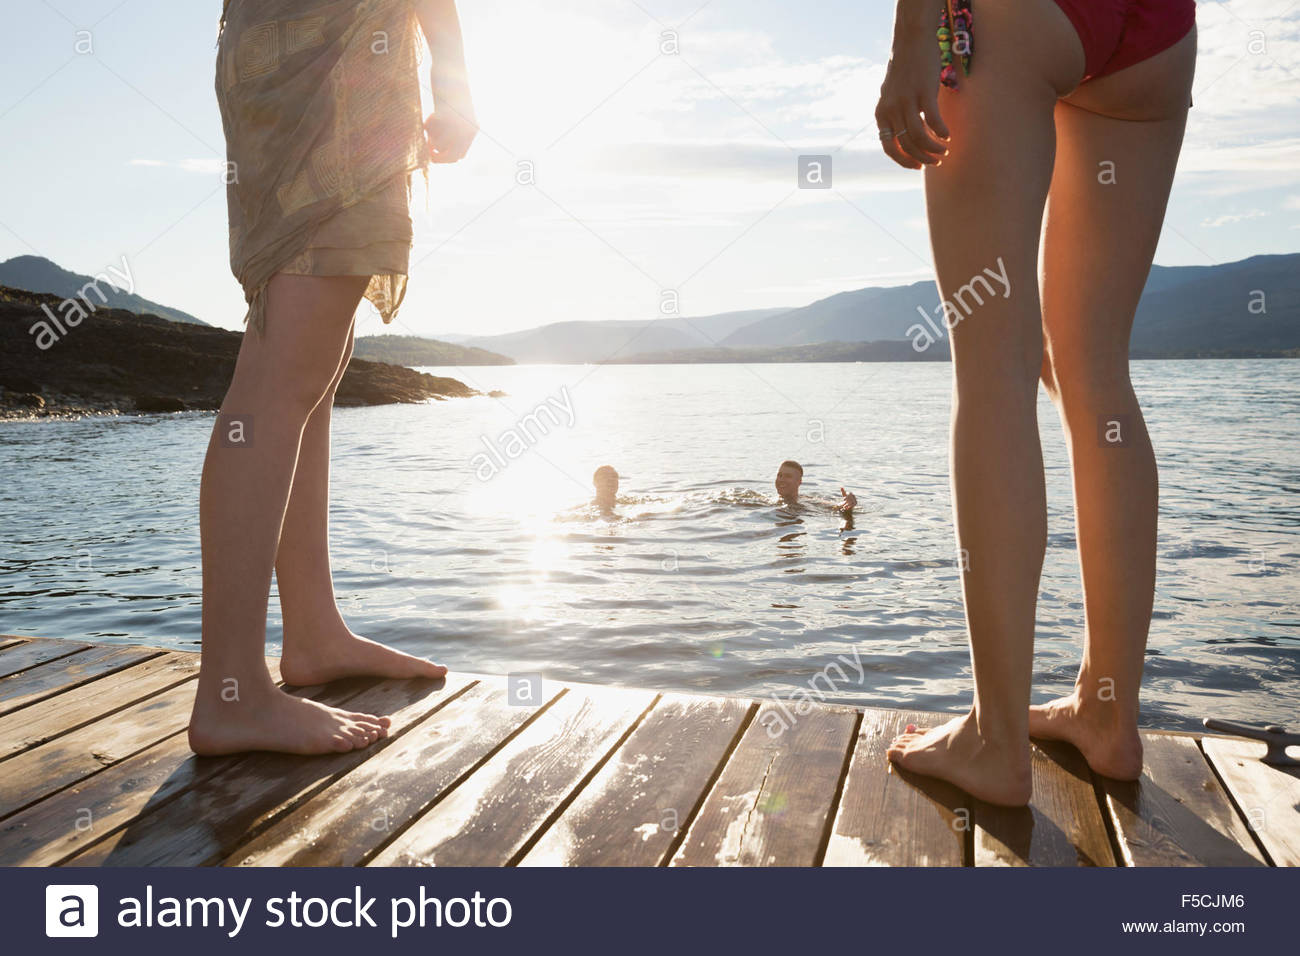 Women on dock watching men swimming in lake - Stock Image